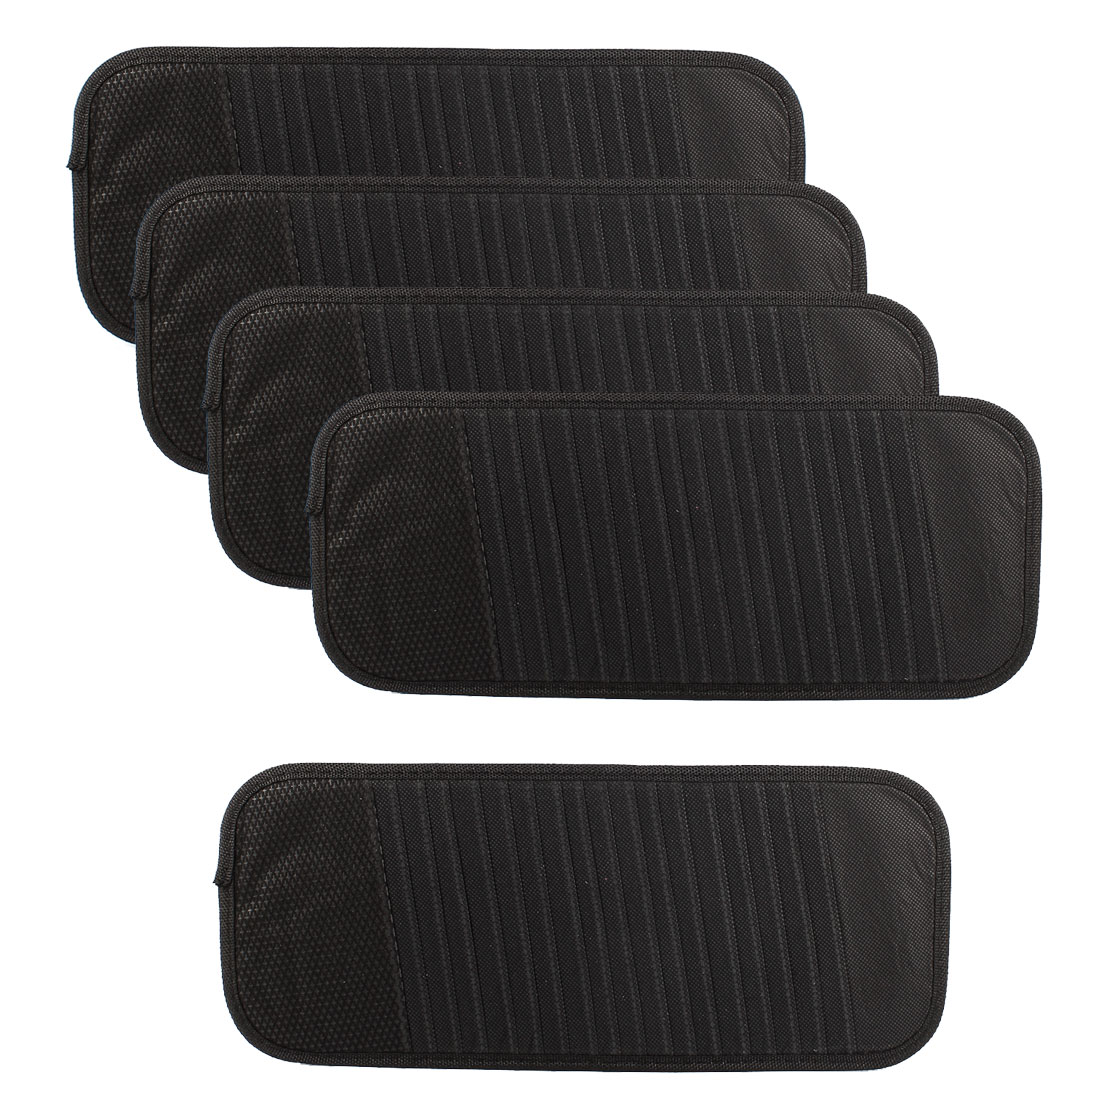 Vehicle 18 CD DVD Disk Card Visor Case Holder Clipper Bag Pouch Black 5pcs